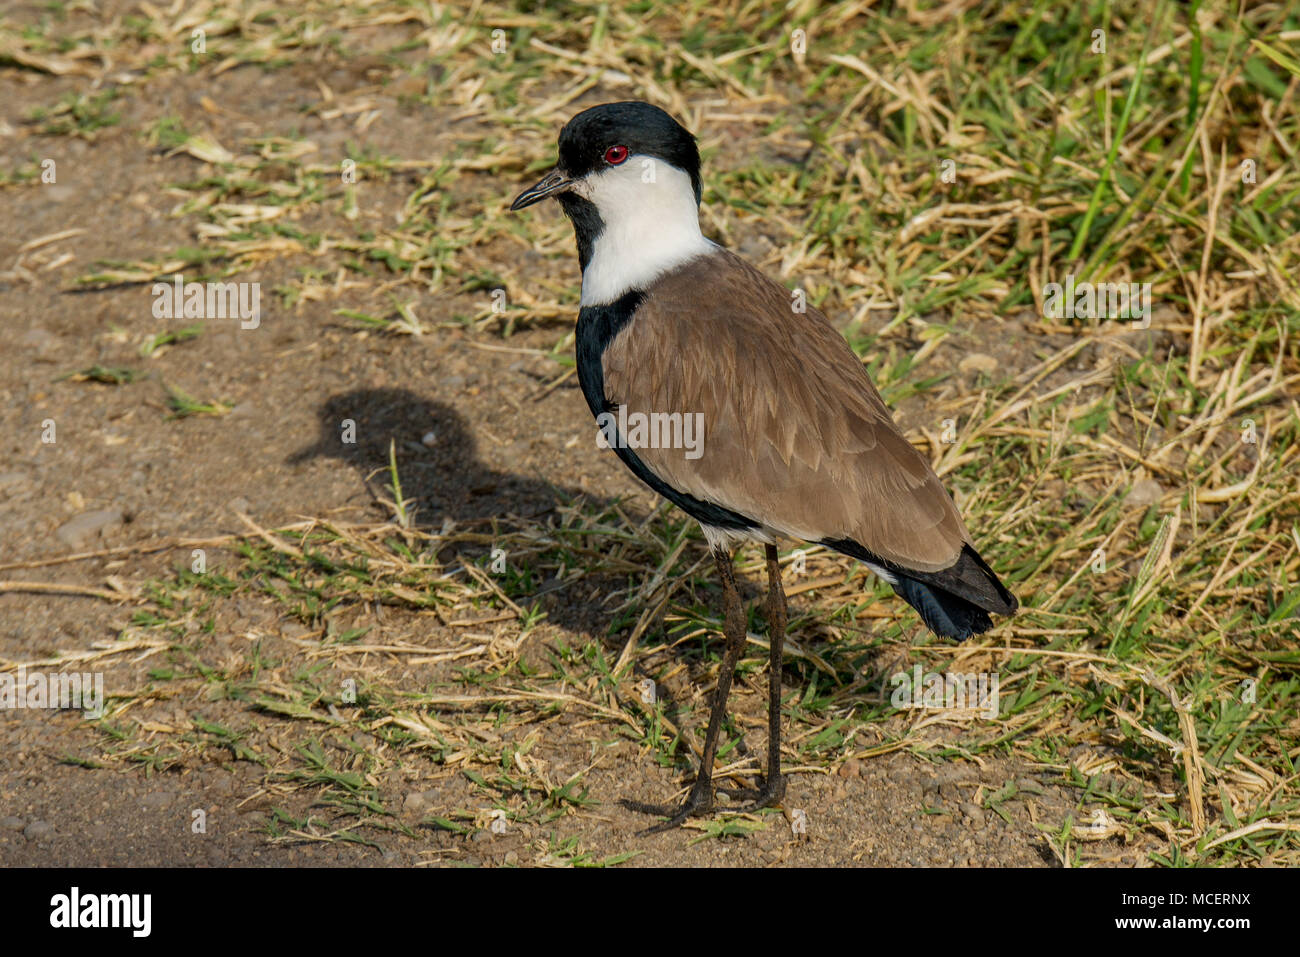 CLOSE UP OF SPUR-WINGED LAPWING OR SPUR-WINGED PLOVER (VANELLUS SPINOSUS), LAKE MANYARA NATIONAL PARK, TANZANIA - Stock Image